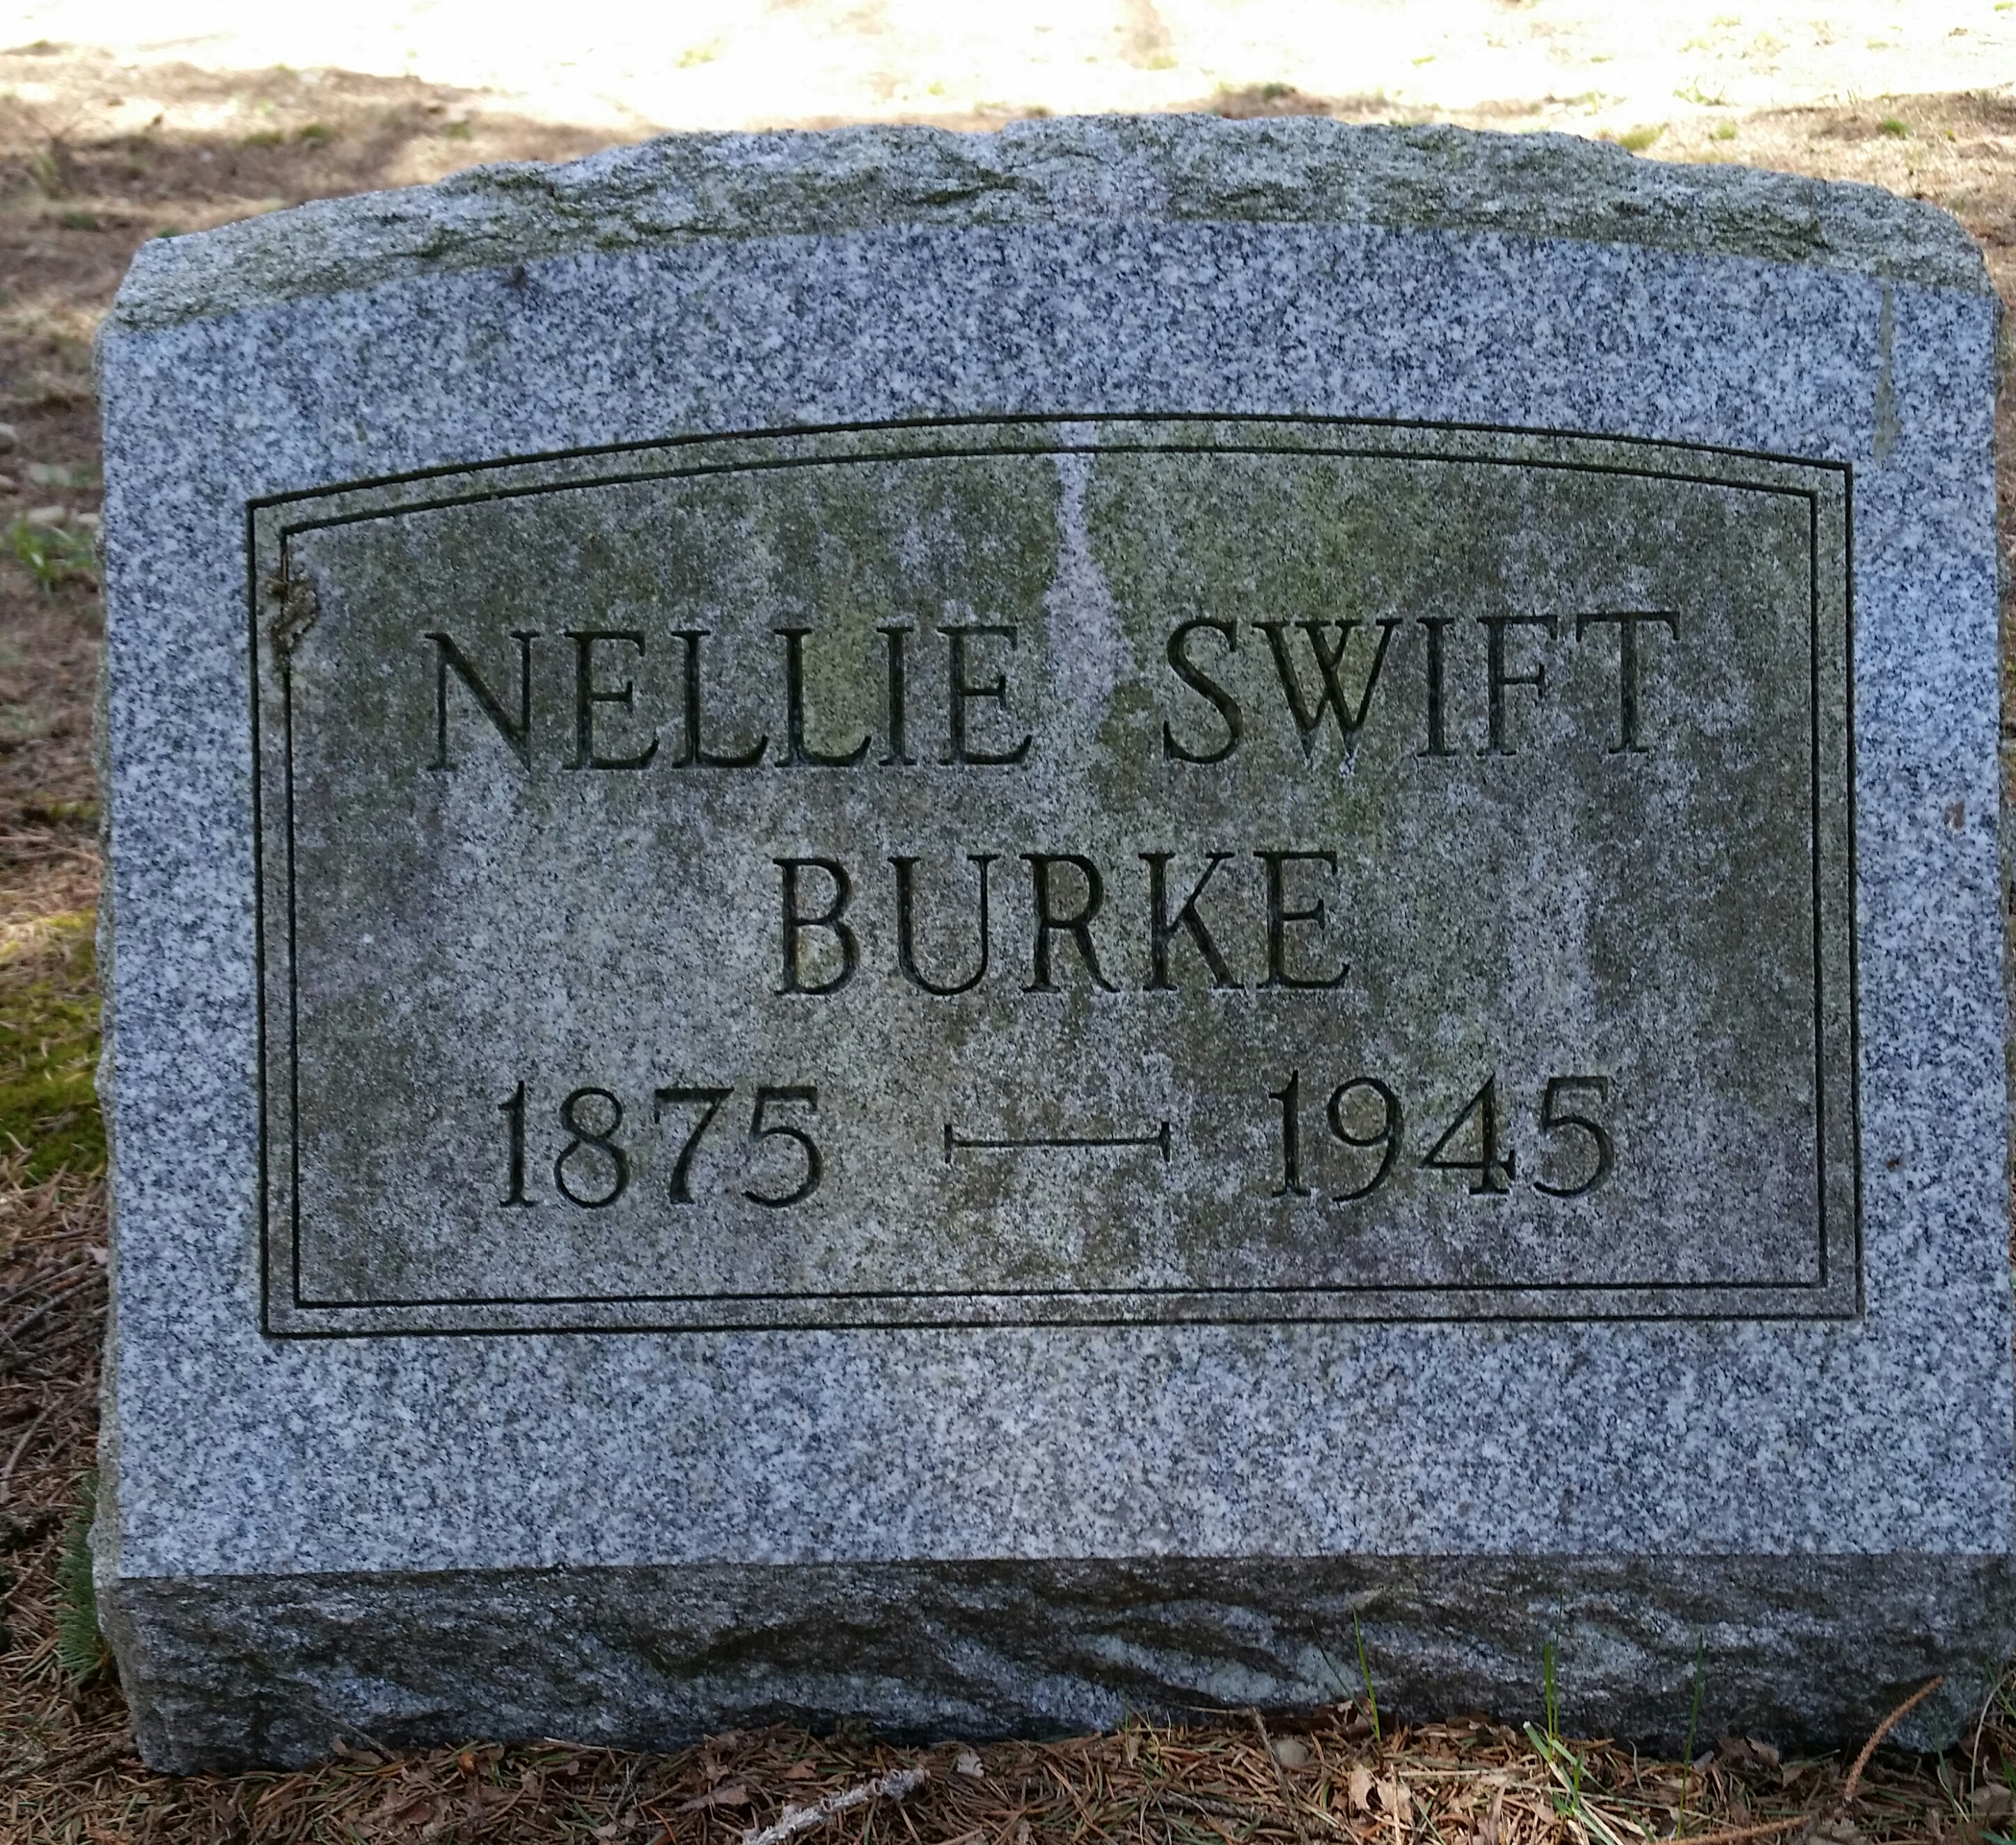 Nellie Swift